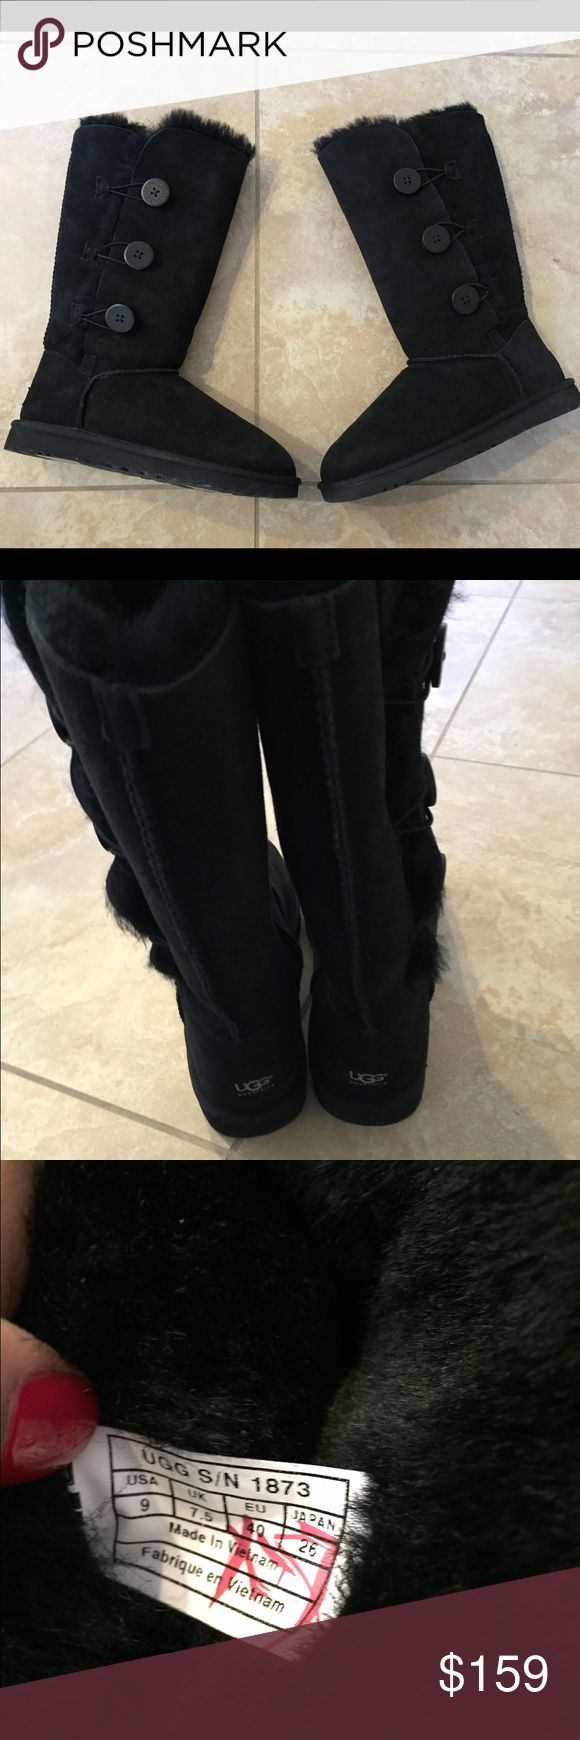 Ugg Bailey button tall boots size 9 new Ugg Bailey button tall boots size 9 new without box ...100%authentic ....Inside tag marked with red to prevent returns ........handled and tried on Instore UGG Shoes Winter & Rain Boots